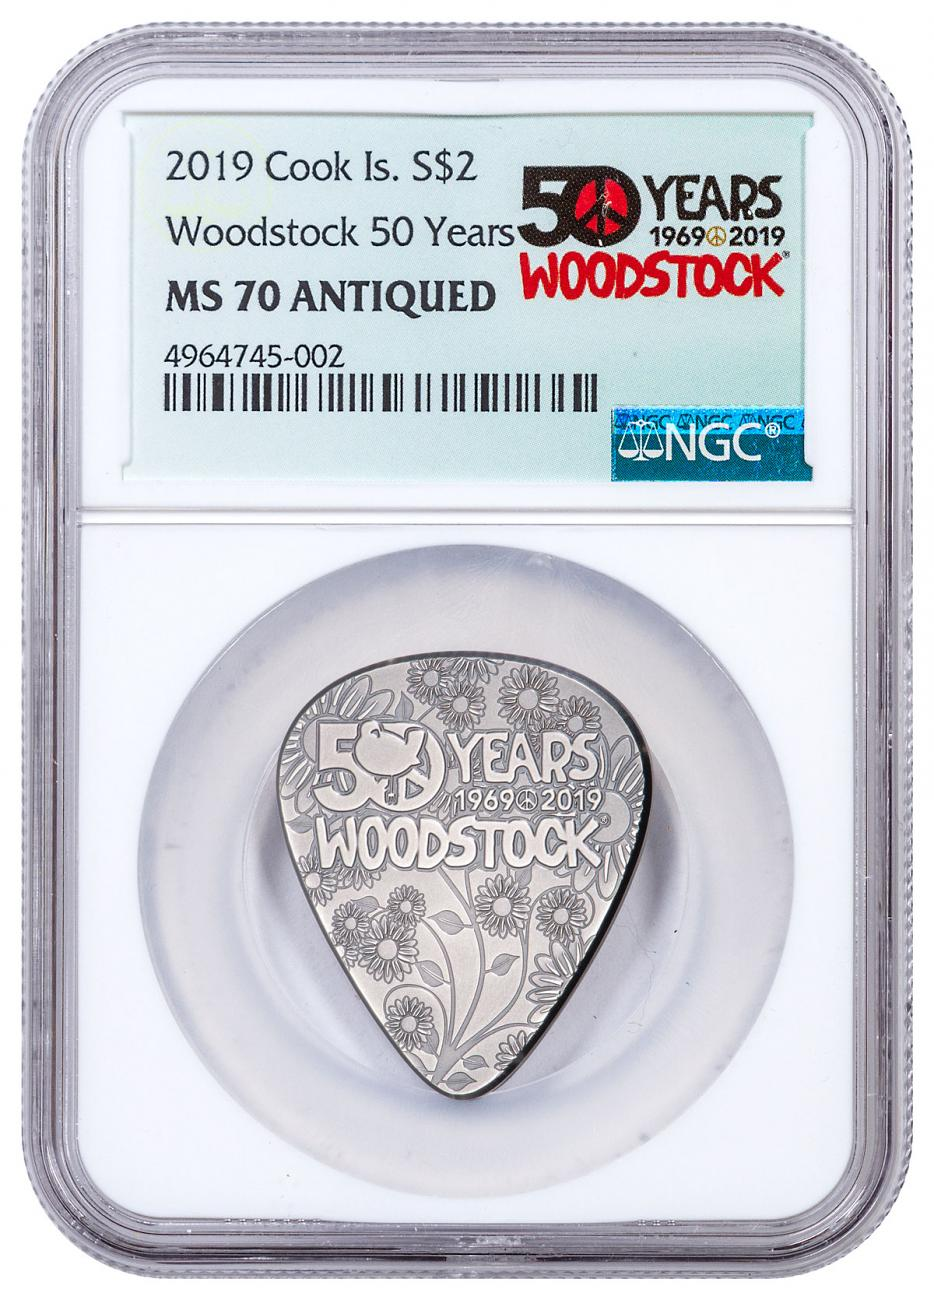 2019 Cook Islands Woodstock - Guitar Pick Shaped 1/4 oz Silver Antiqued $2 Coin NGC MS70 Exclusive Woodstock Label